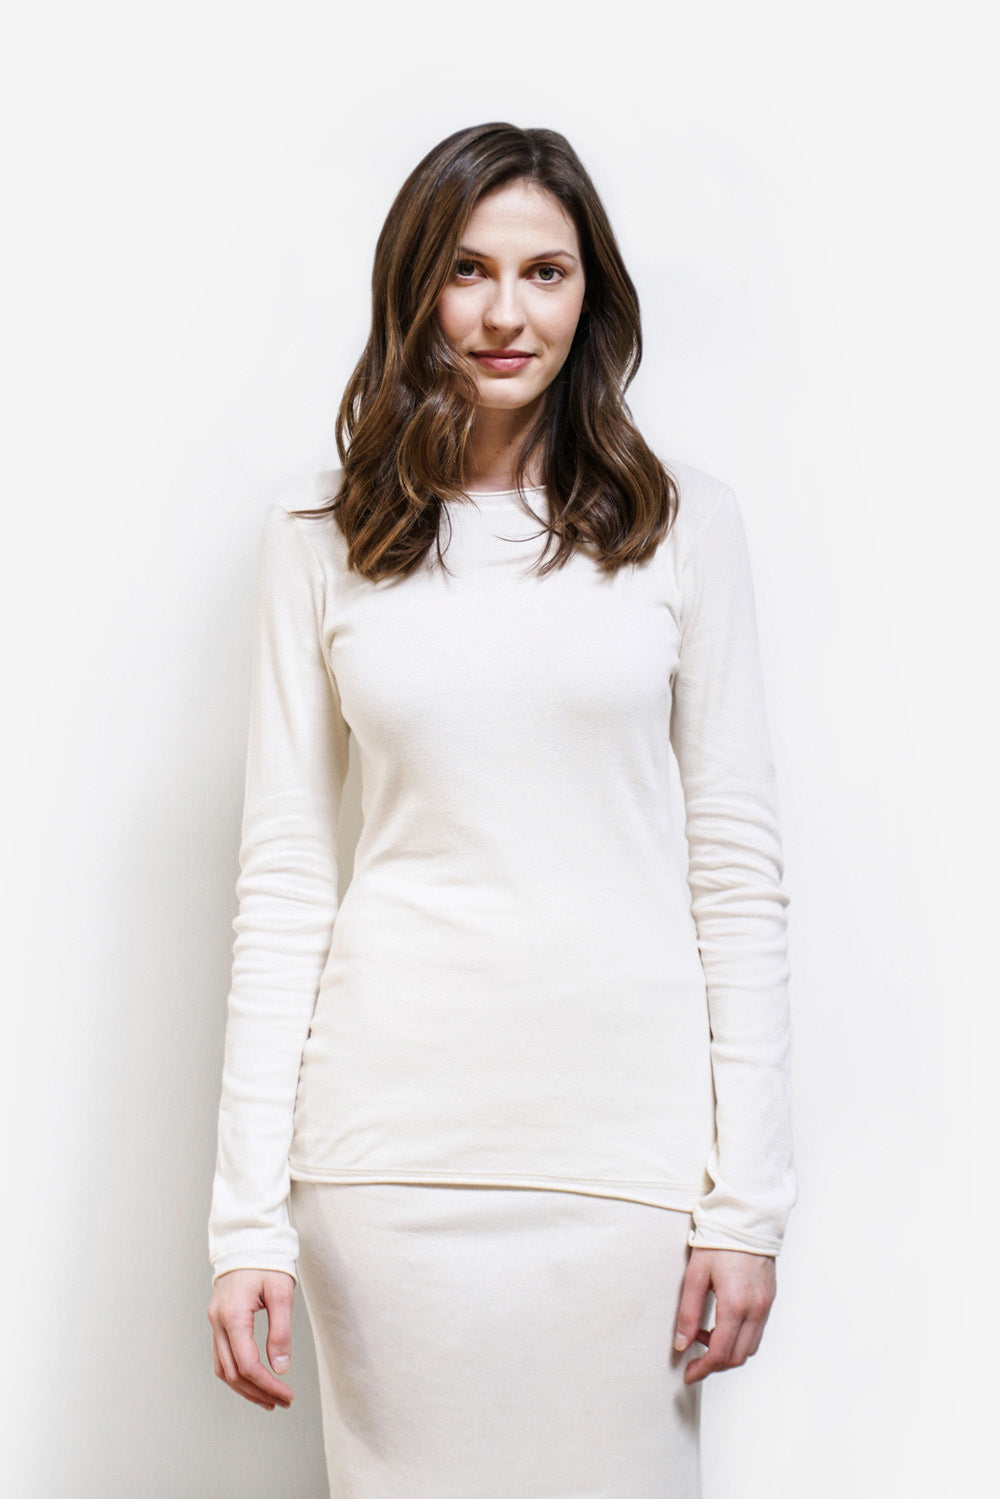 Alabama Chanin The Rib Crew Long Sleeve Layering Top in Natural Organic Cotton Styled on Model